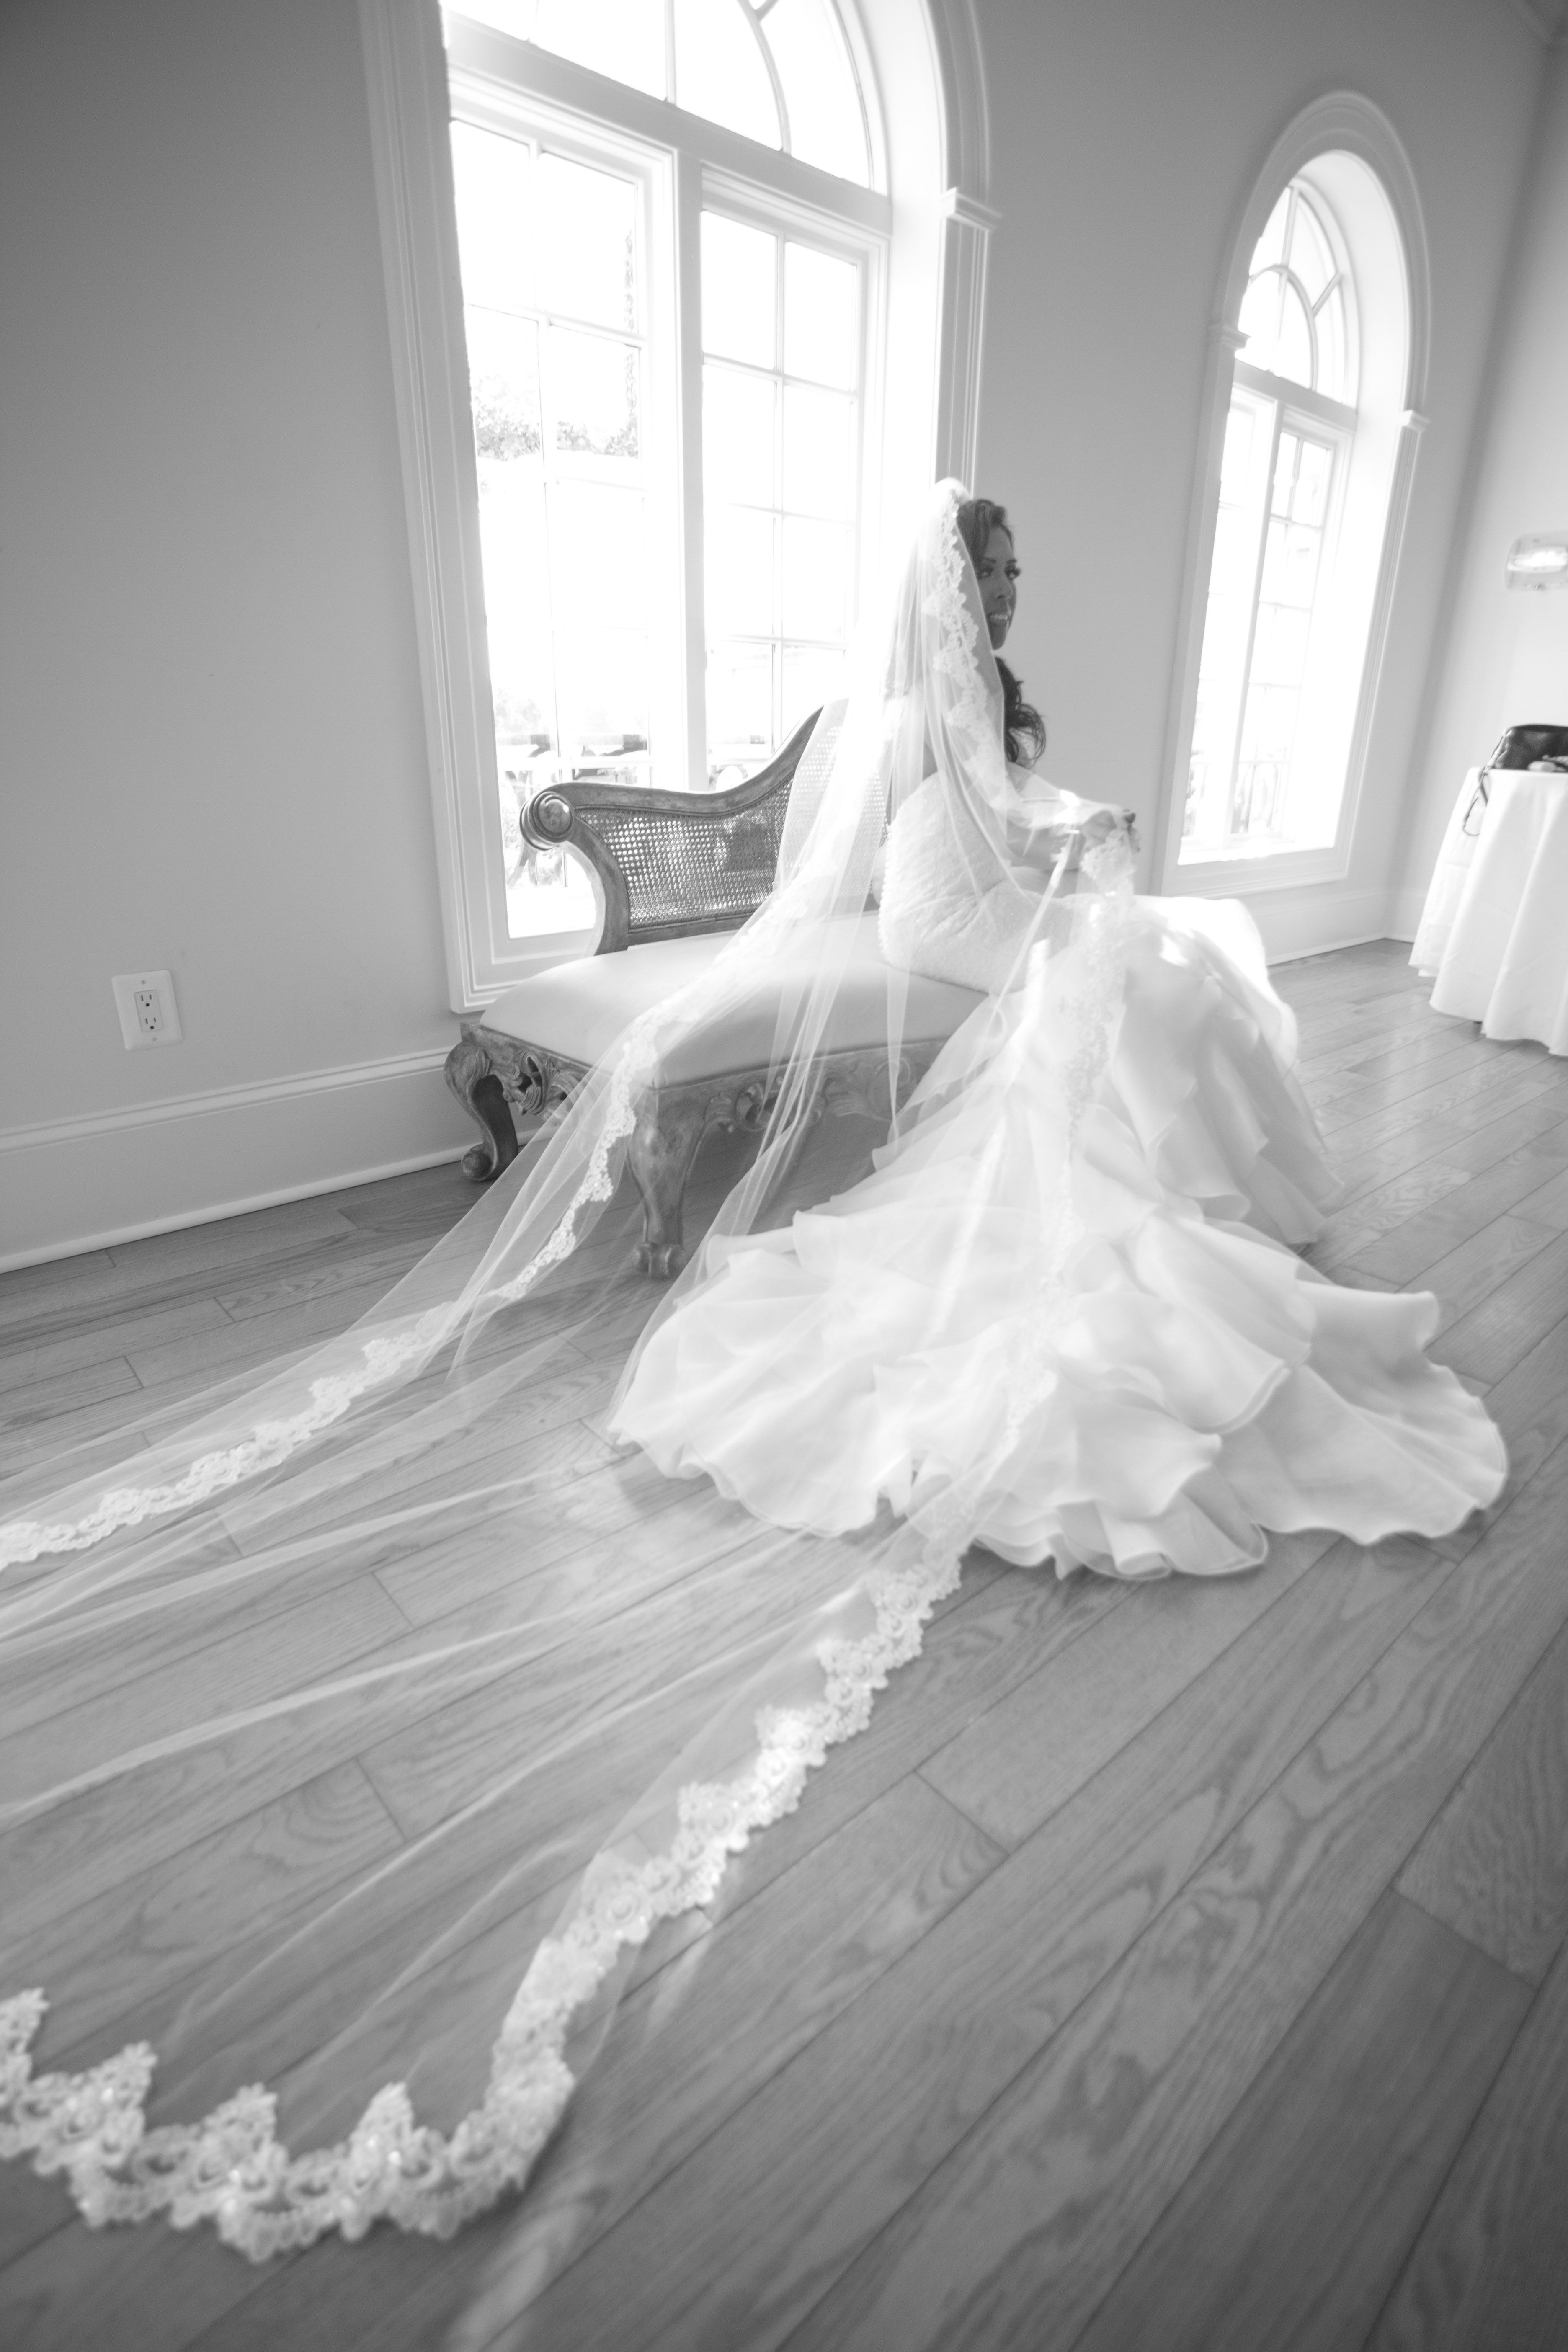 This Company Handmakes And Sells Affordable Wedding Veils Is